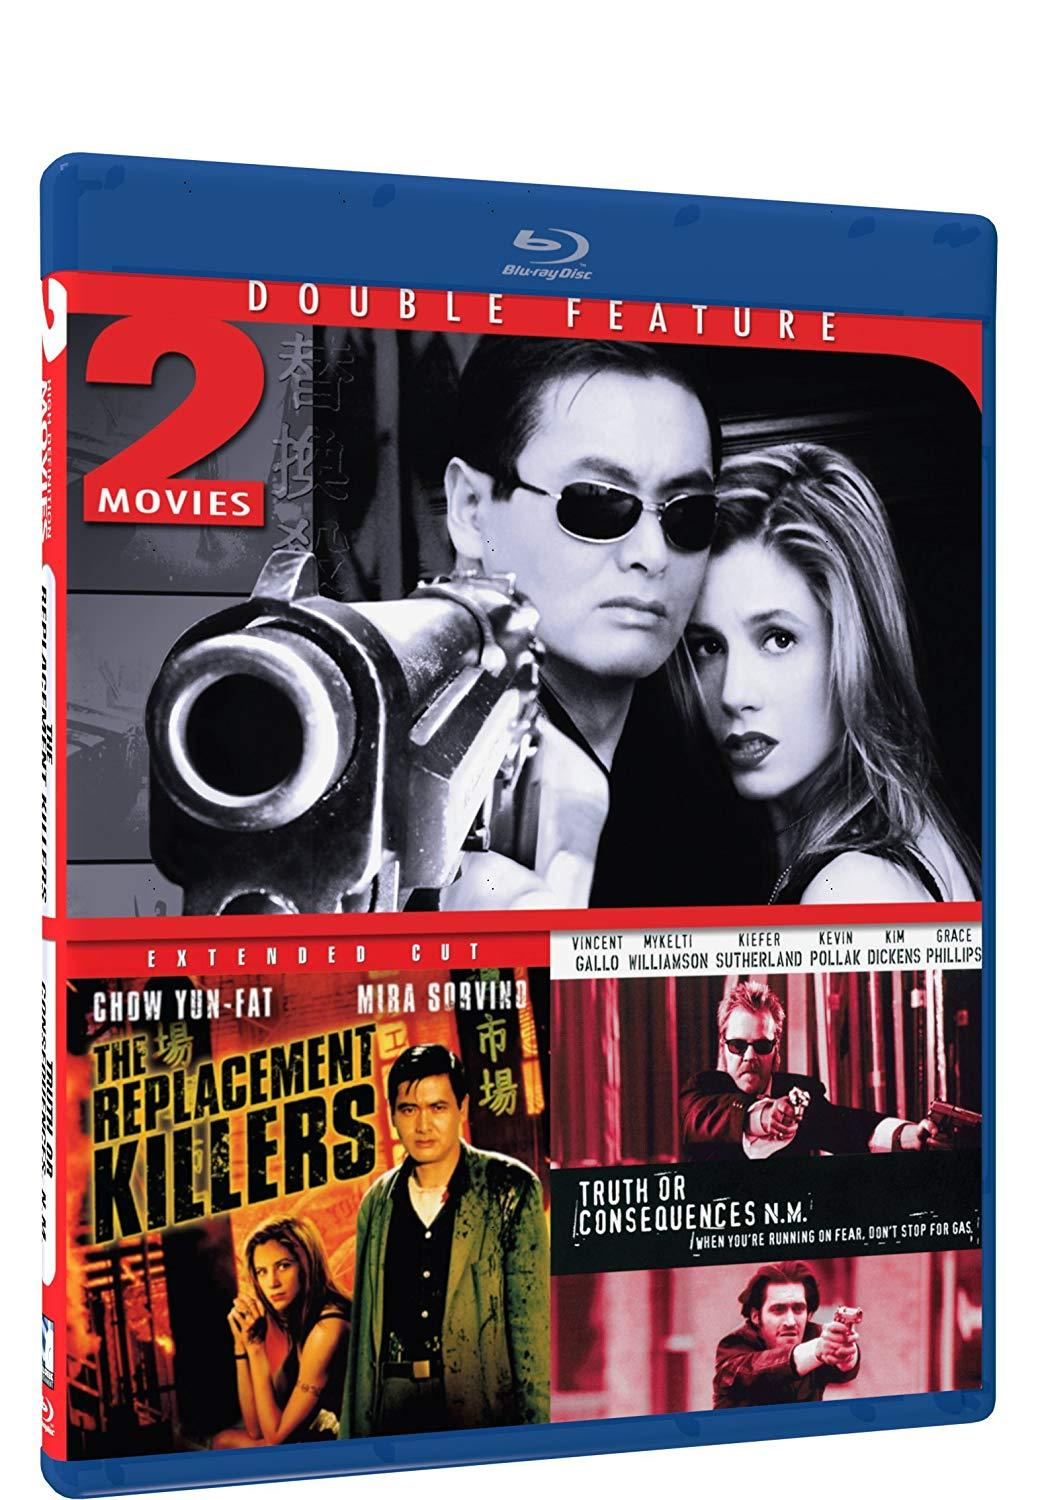 Replacement Killers & Truth or Consequences, N.M. Double Feature [Blu-ray]